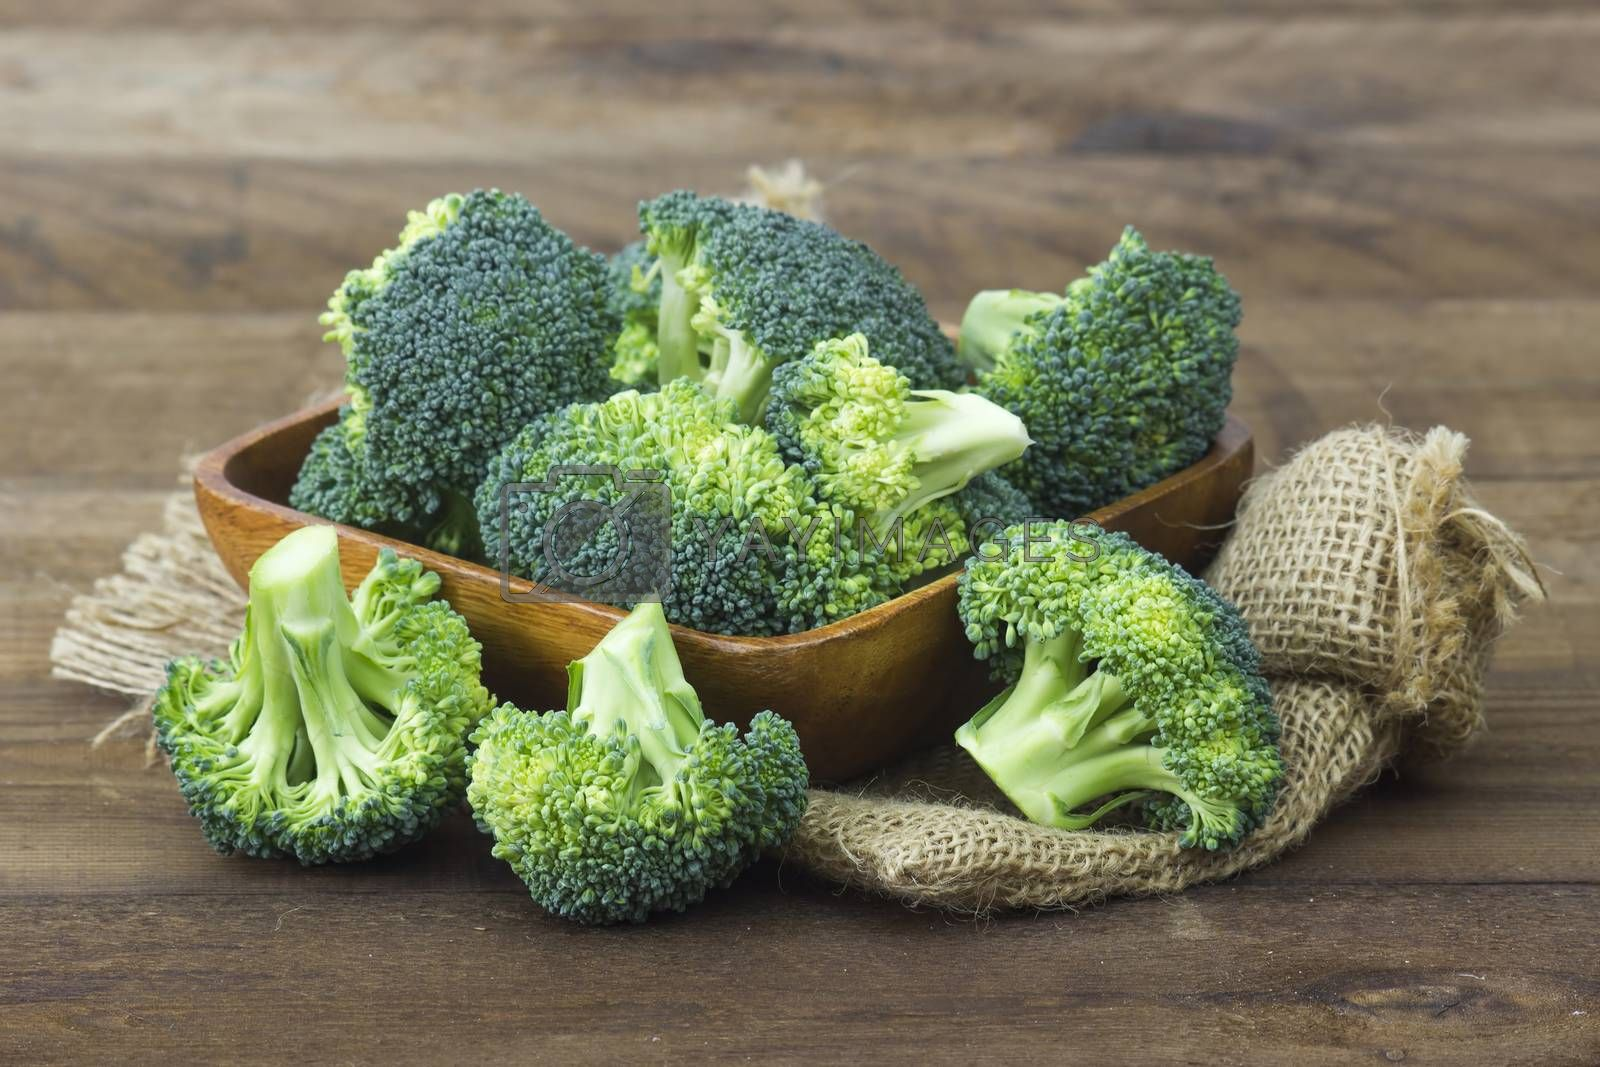 Raw broccoli in a bowl on wooden background